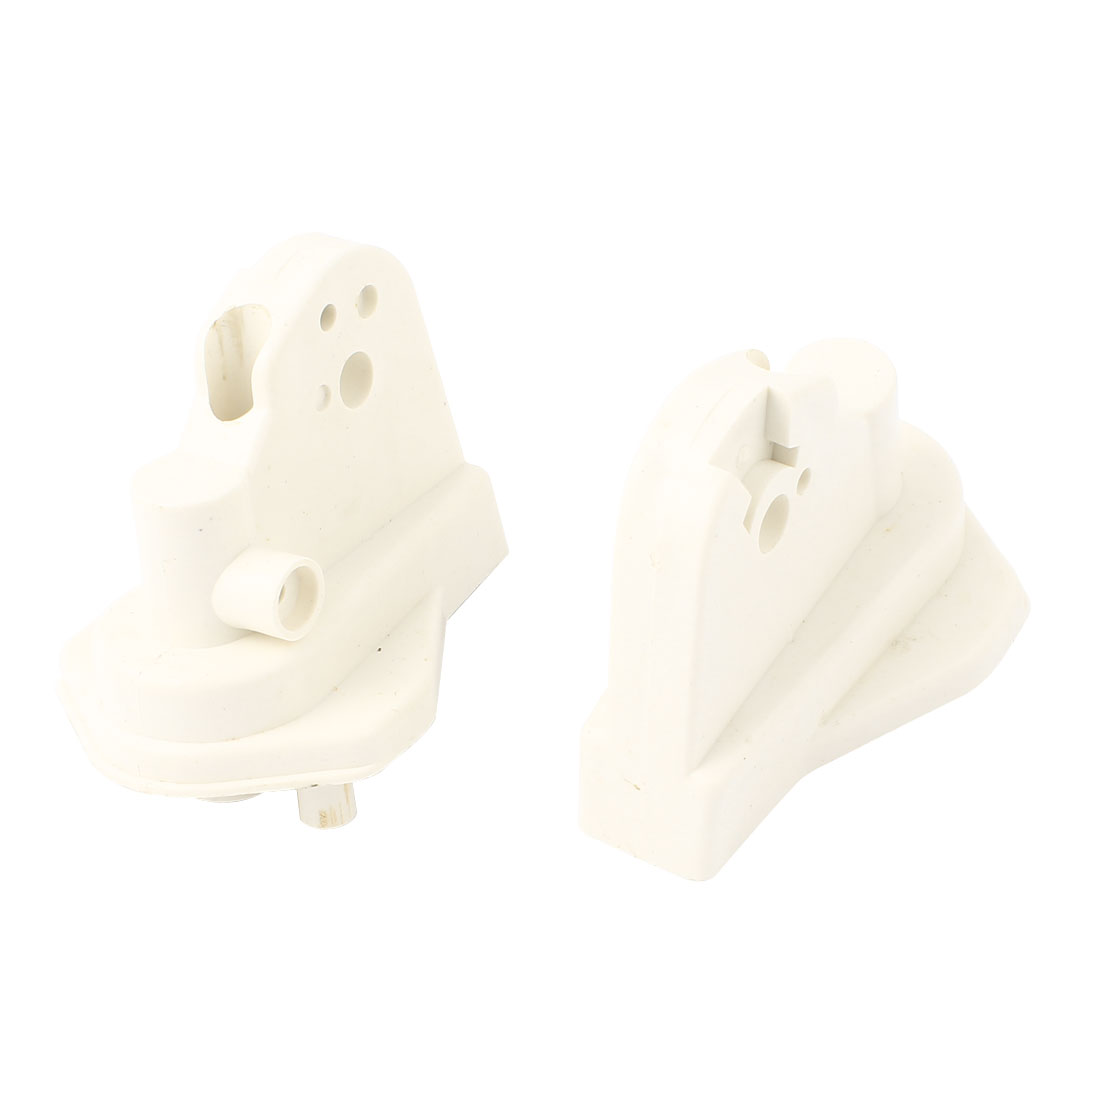 2Pcs White Plastic Electric Fan Elbow Connectors Replacement 80mm x 55mm x 60mm